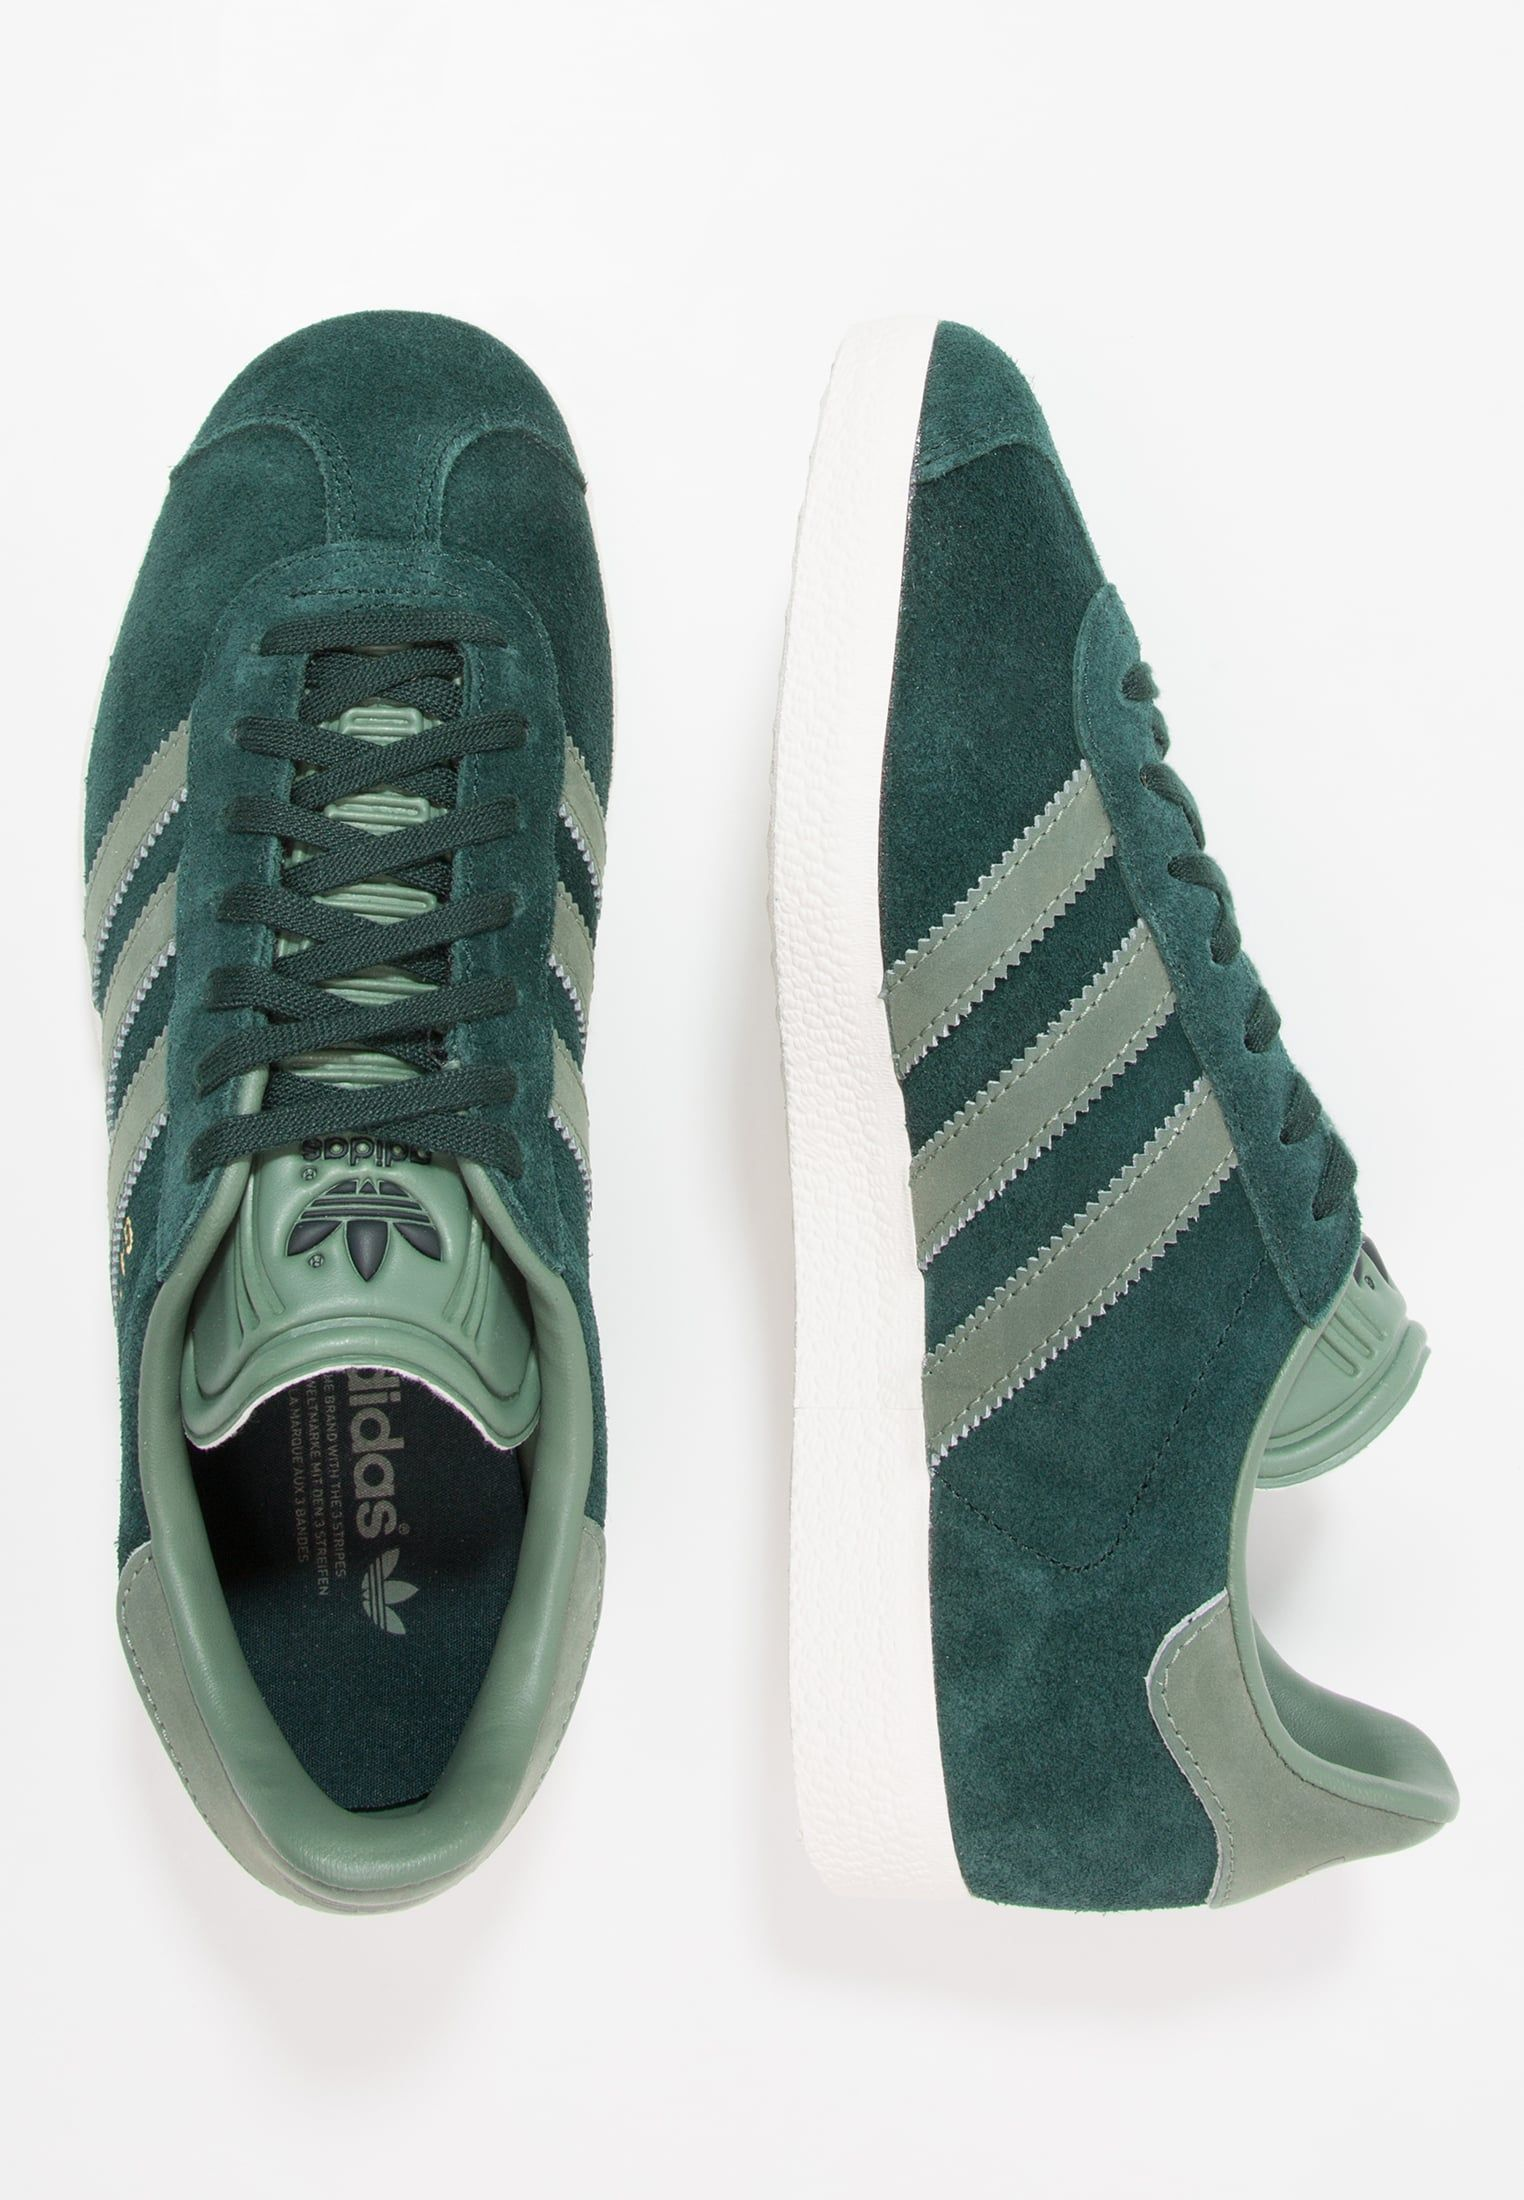 Zalando Sale Gazelles Finished In Jade Green Suede With Pale Green Trim